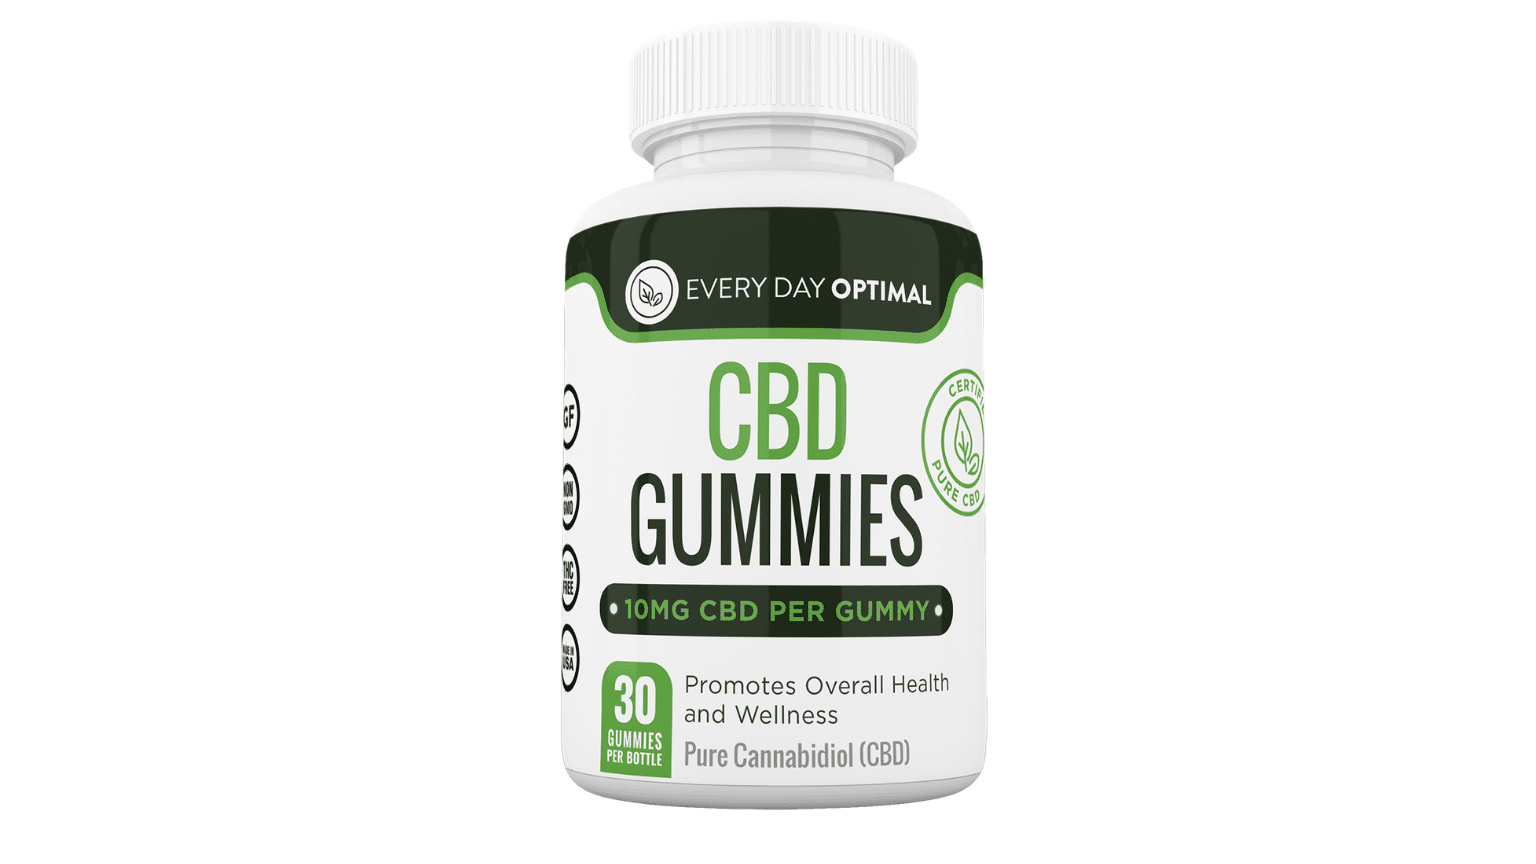 every-day-optimal-cbd-gummies